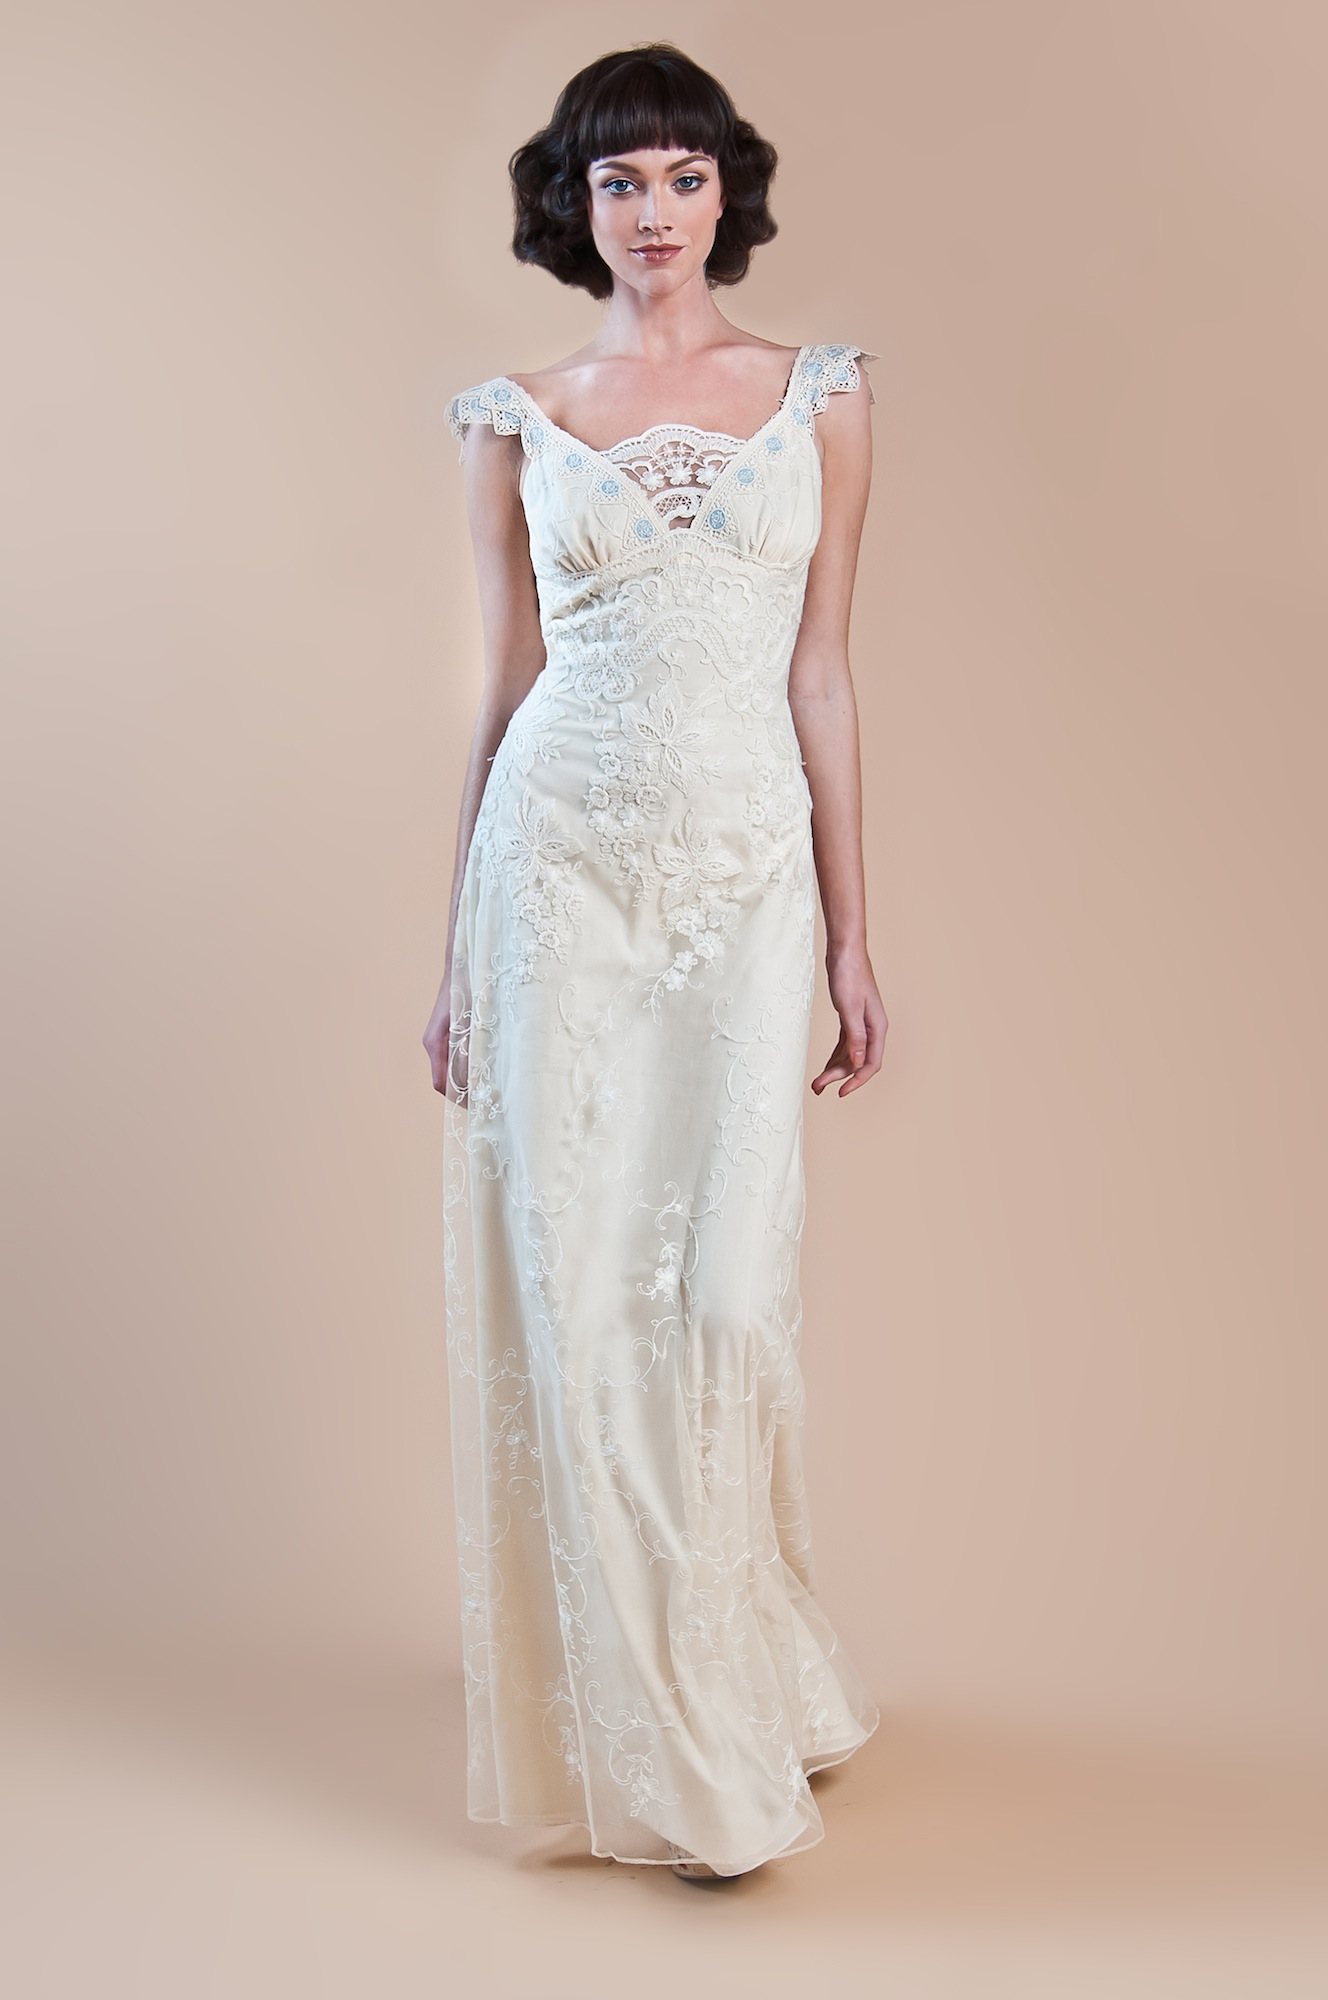 2013-wedding-dress-claire-pettibone-windsor-rose-collection-waverly2.original